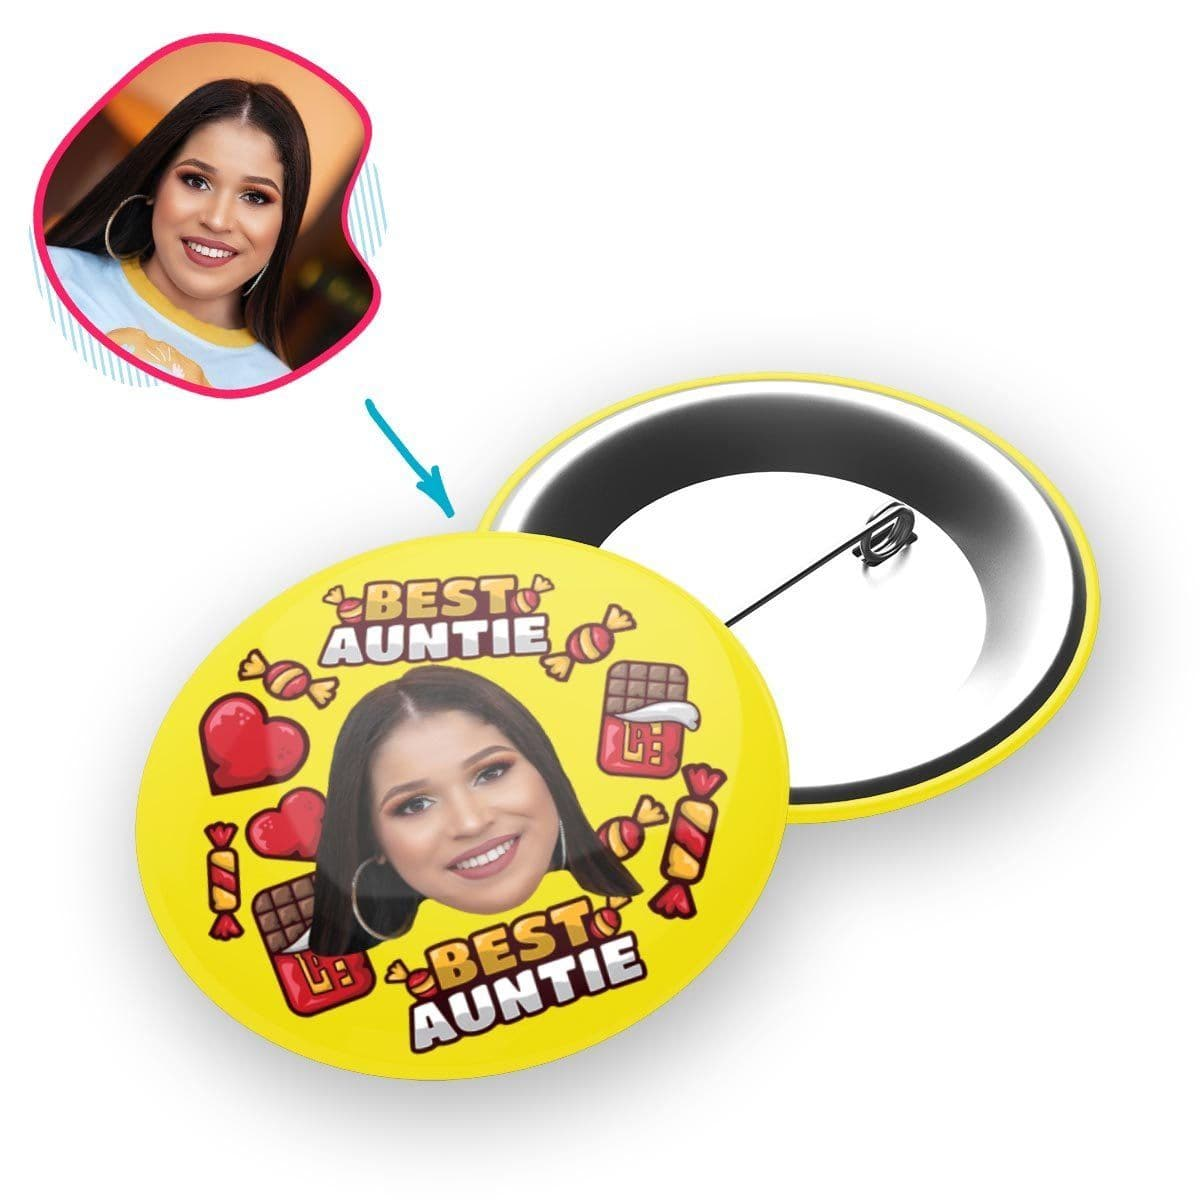 Yellow Auntie personalized pin with photo of face printed on it